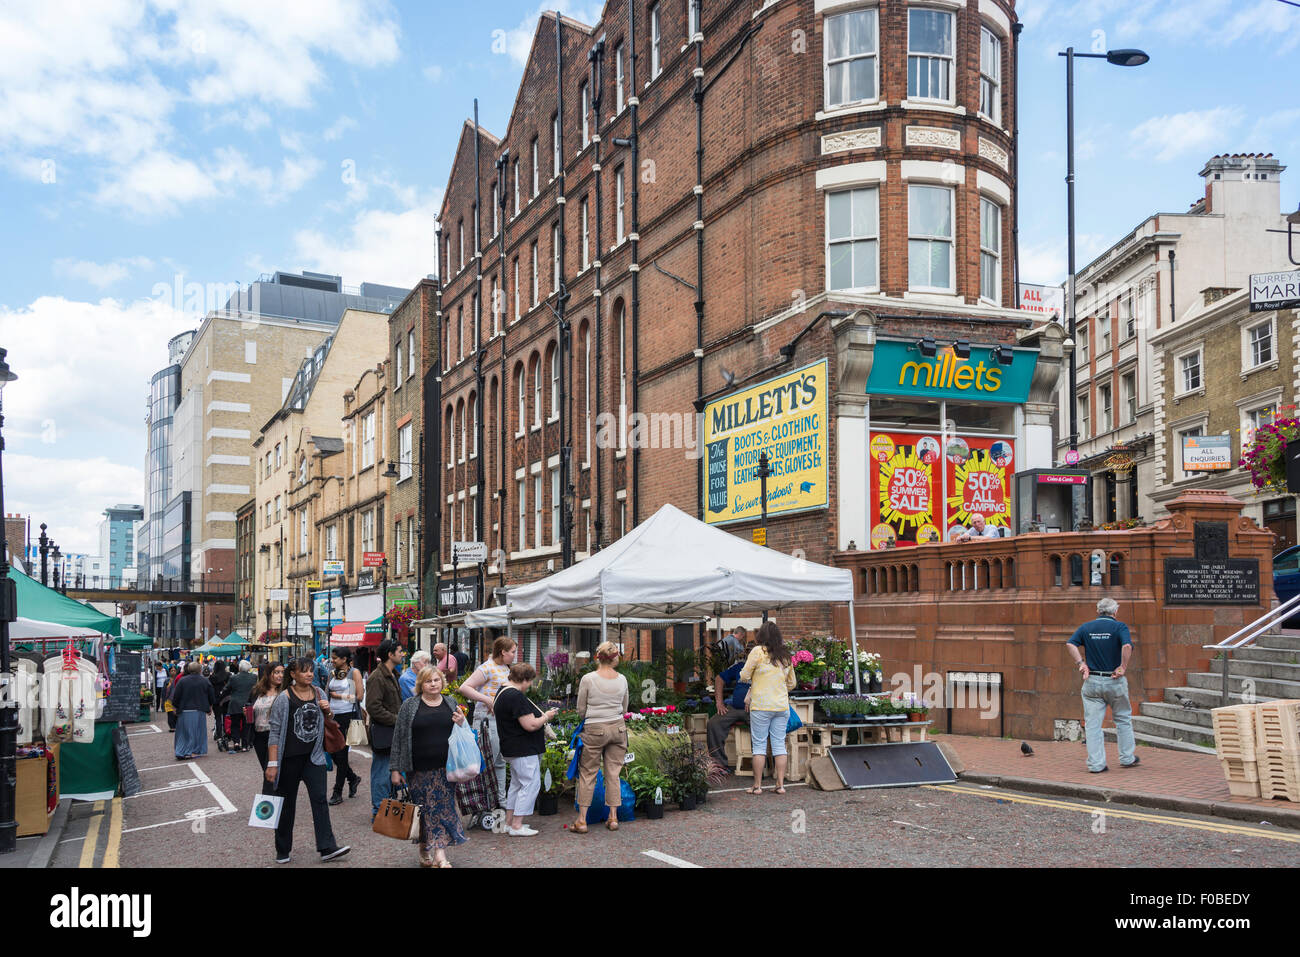 Surrey Street Market, Surrey Street, Croydon, London Borough of Croydon, Greater London, England, United Kingdom - Stock Image